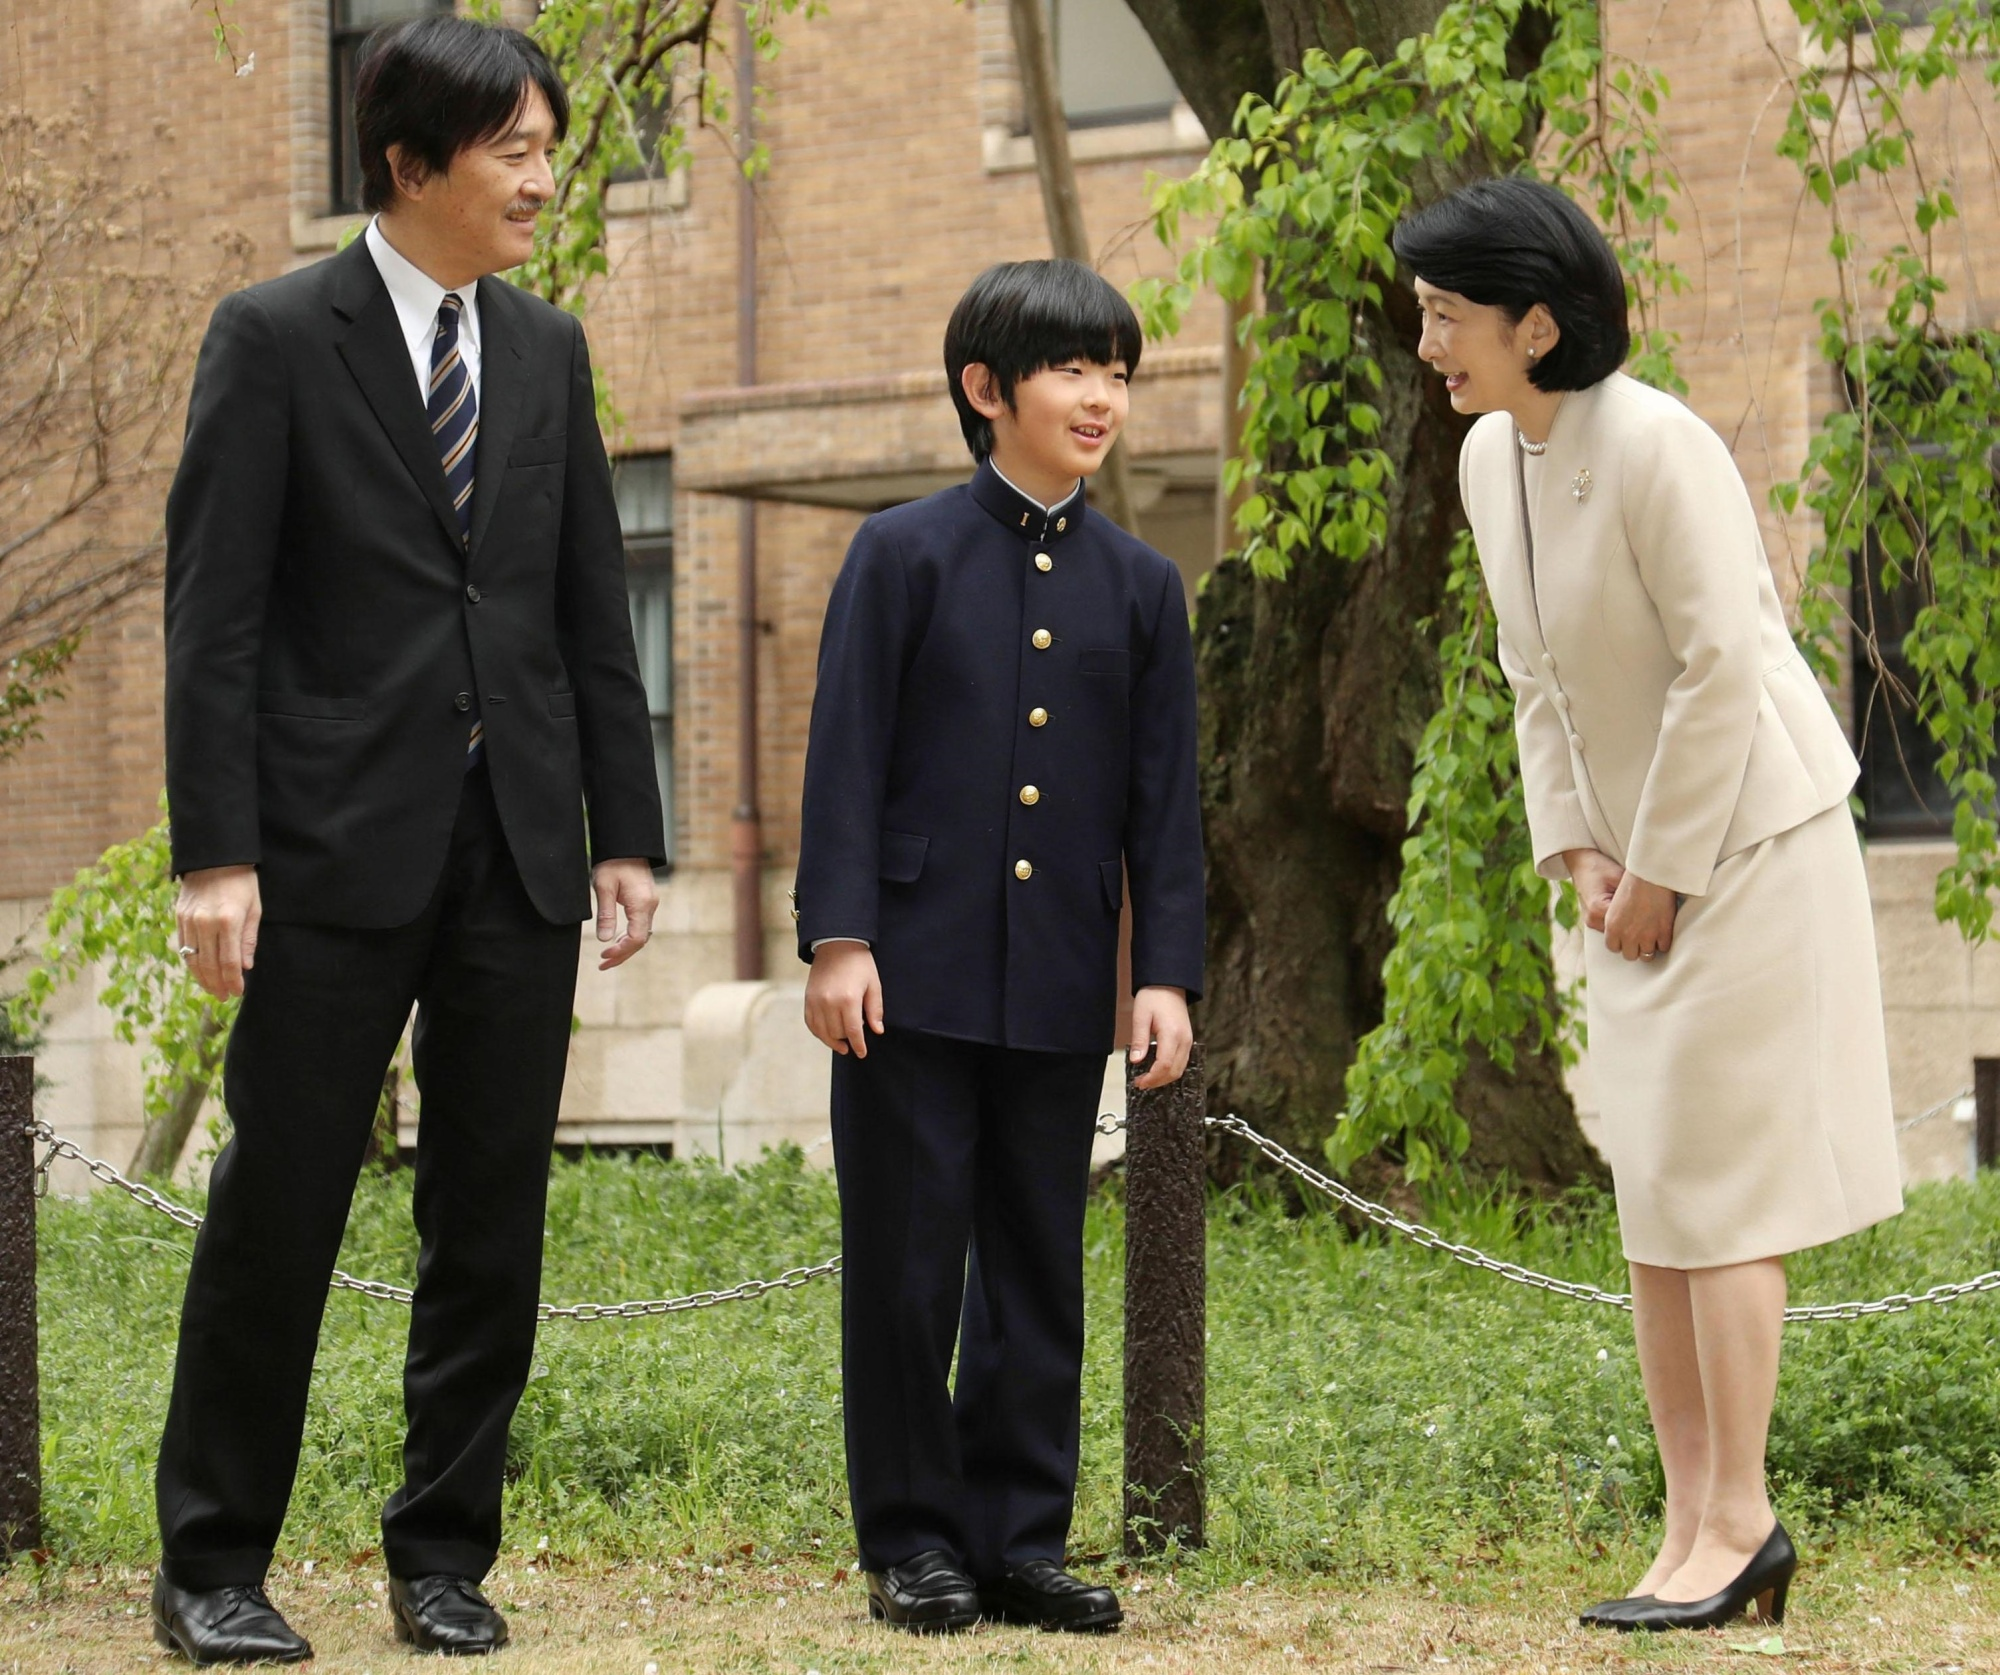 Prince Hisahito prepares to pose for a photo with his parents, Prince Akishino and Princess Kiko, before attending the entrance ceremony for a junior high school affiliated with Ochanomizu University in Tokyo's Bunkyo Ward on Monday. | POOL / VIA KYODO